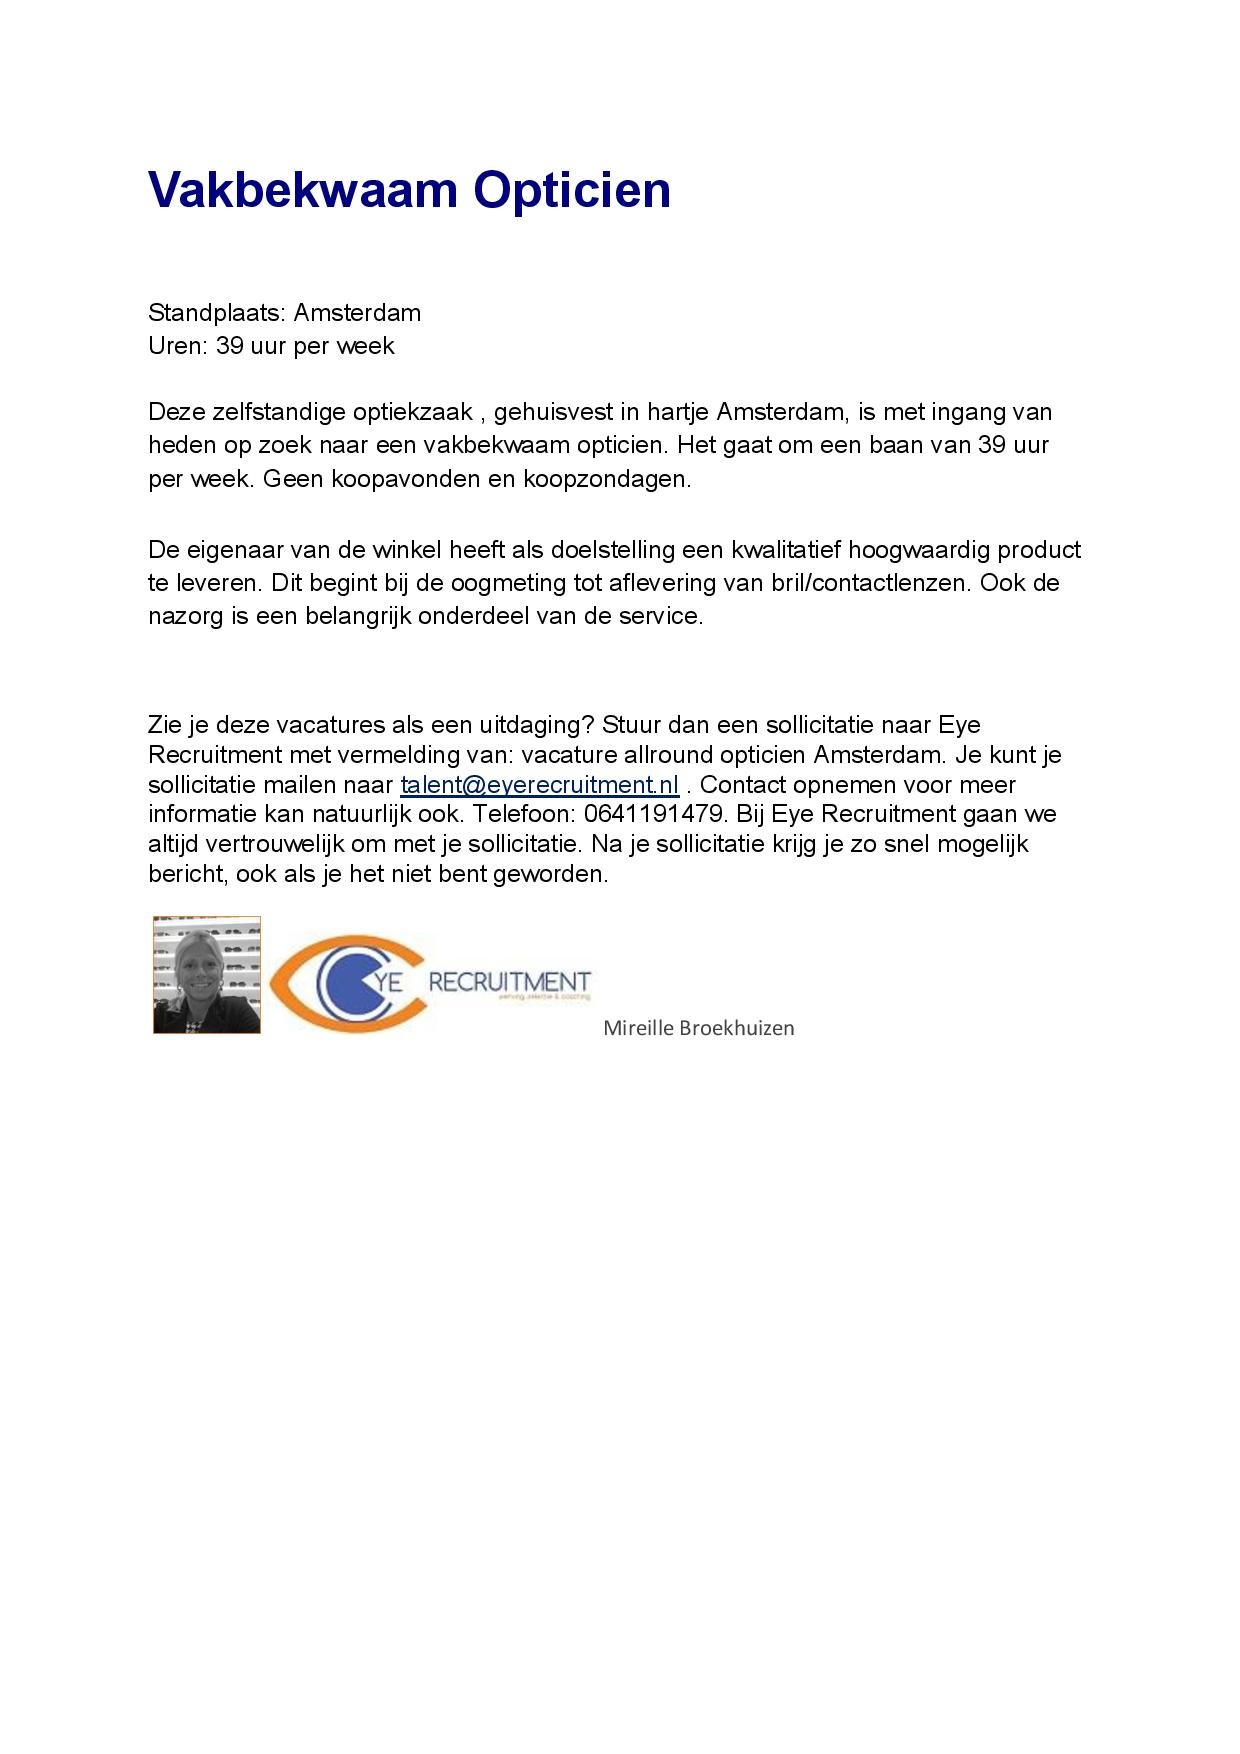 Vacature BAS optiek Gediplomeerde Opticien-page-001